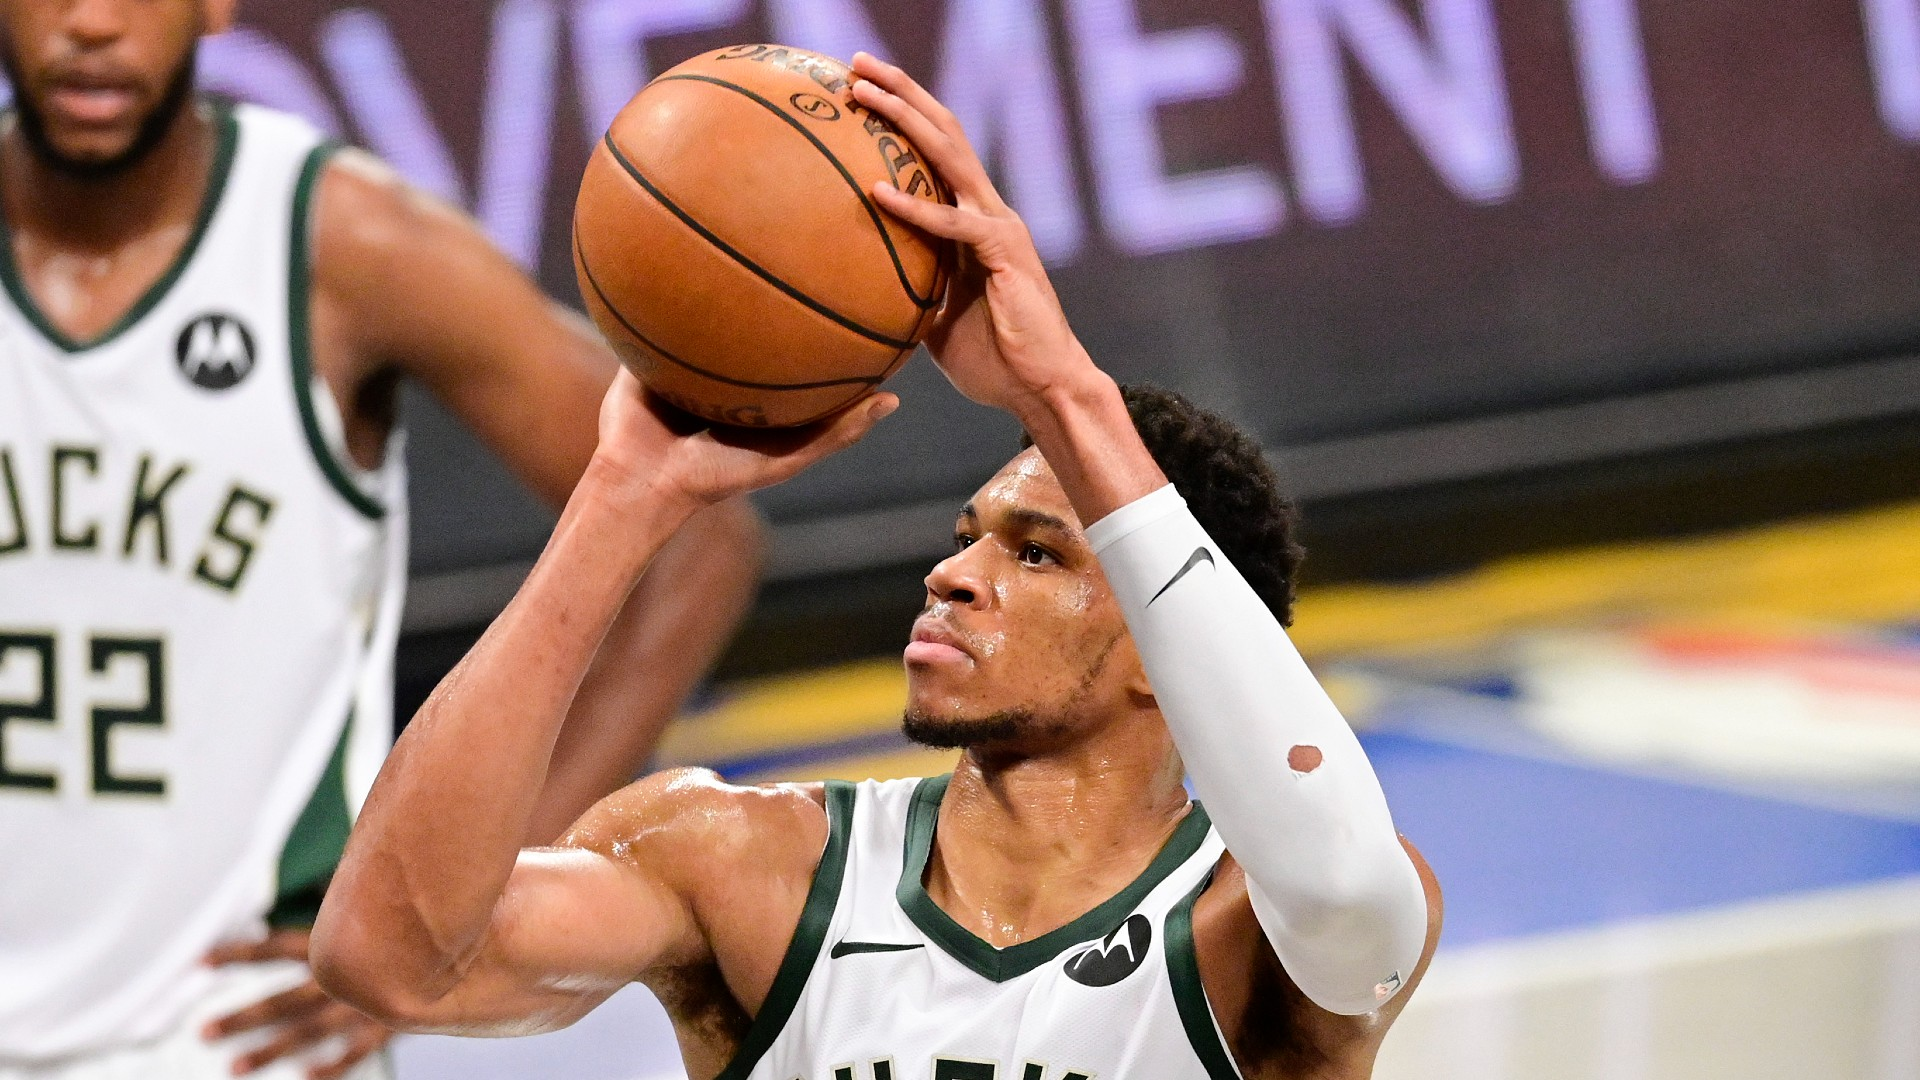 Bucks' Giannis Antetokounmpo calls for a 10-second free kick against Nets